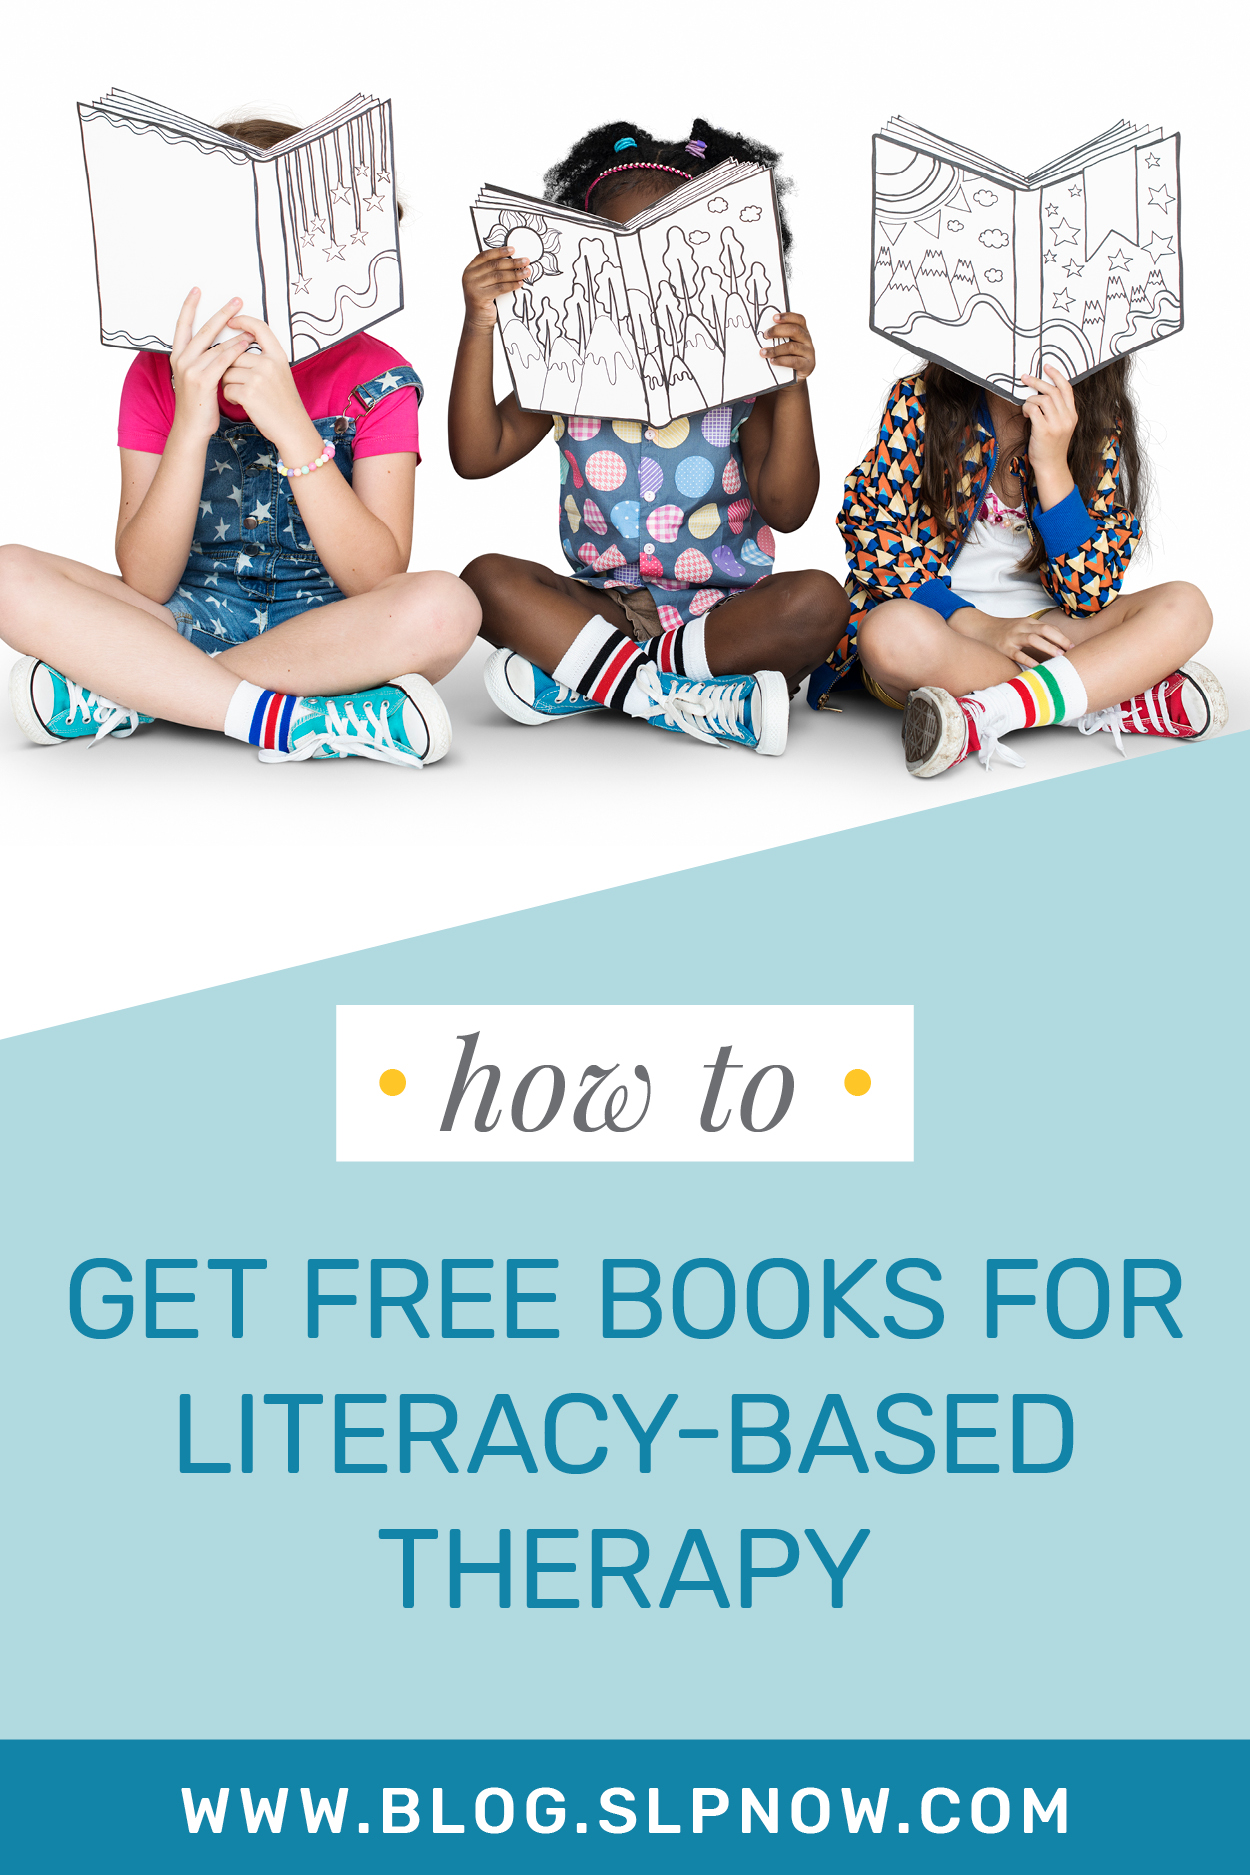 Need ideas for where you can get free books for literacy-based therapy? SLP Now is sharing seven ideas for getting free books -- or at least for getting access to free e-books -- in this blog post! Click through to read about these sources so that you can enhance your resources for speech therapy.